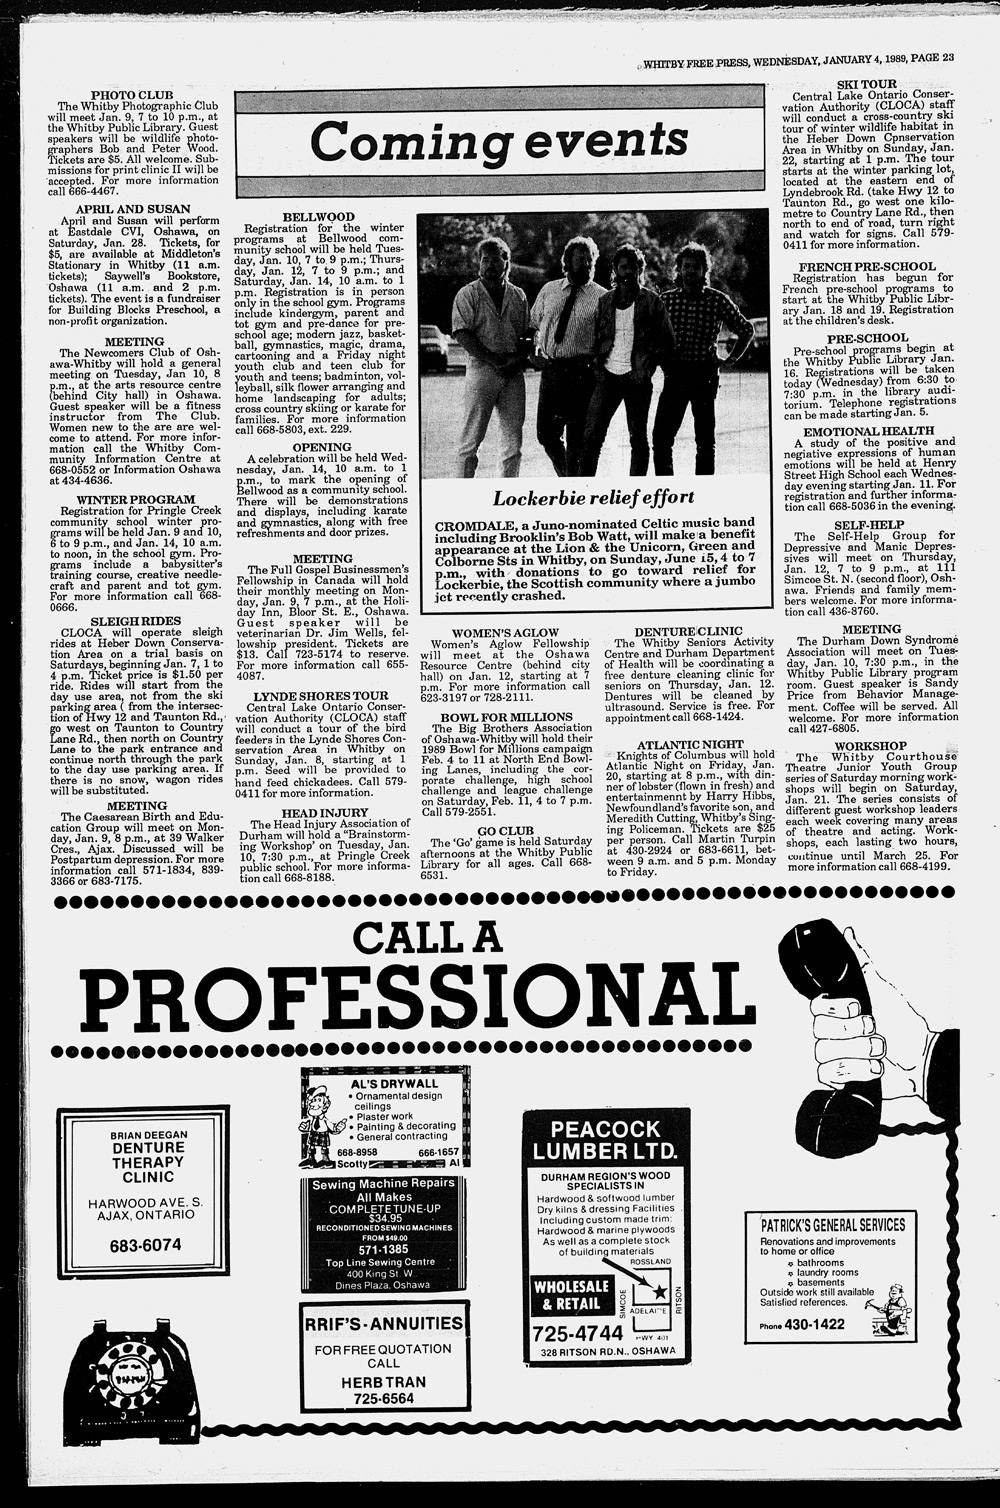 Whitby Free Press, 4 Jan 1989